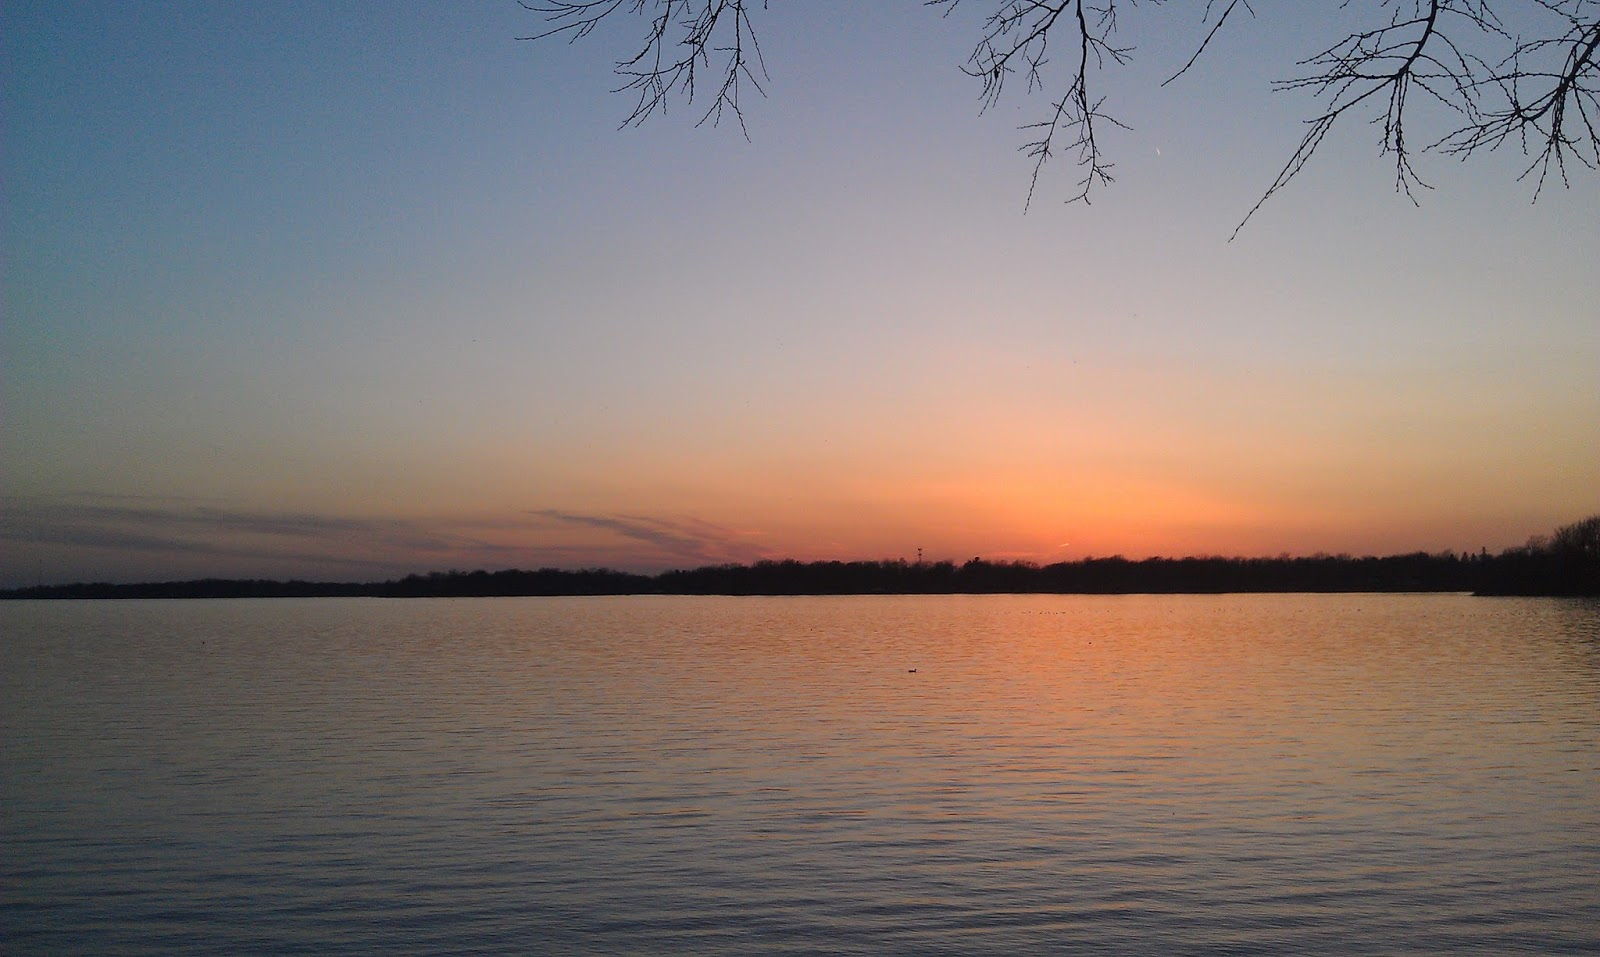 Picture of a sunset over a lake